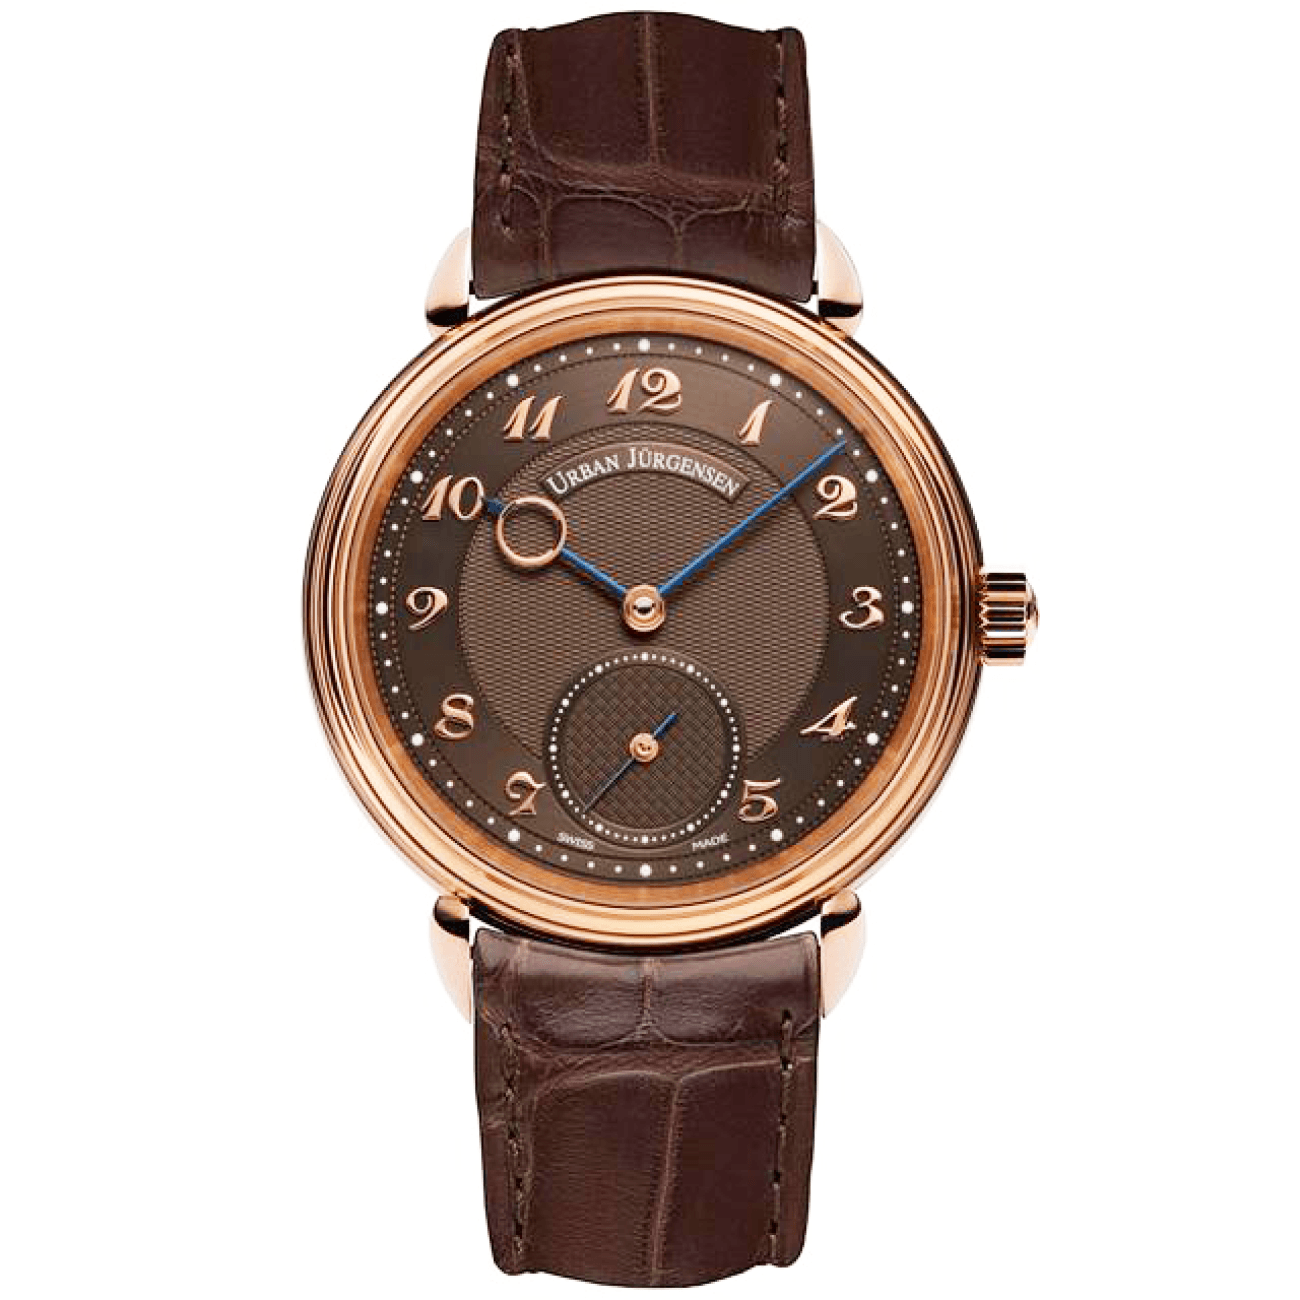 Urban Jurgensen Watches - LIMITED EDITION - 20 PIECES REFERENCE 1140 RG BROWN | Manfredi Jewels